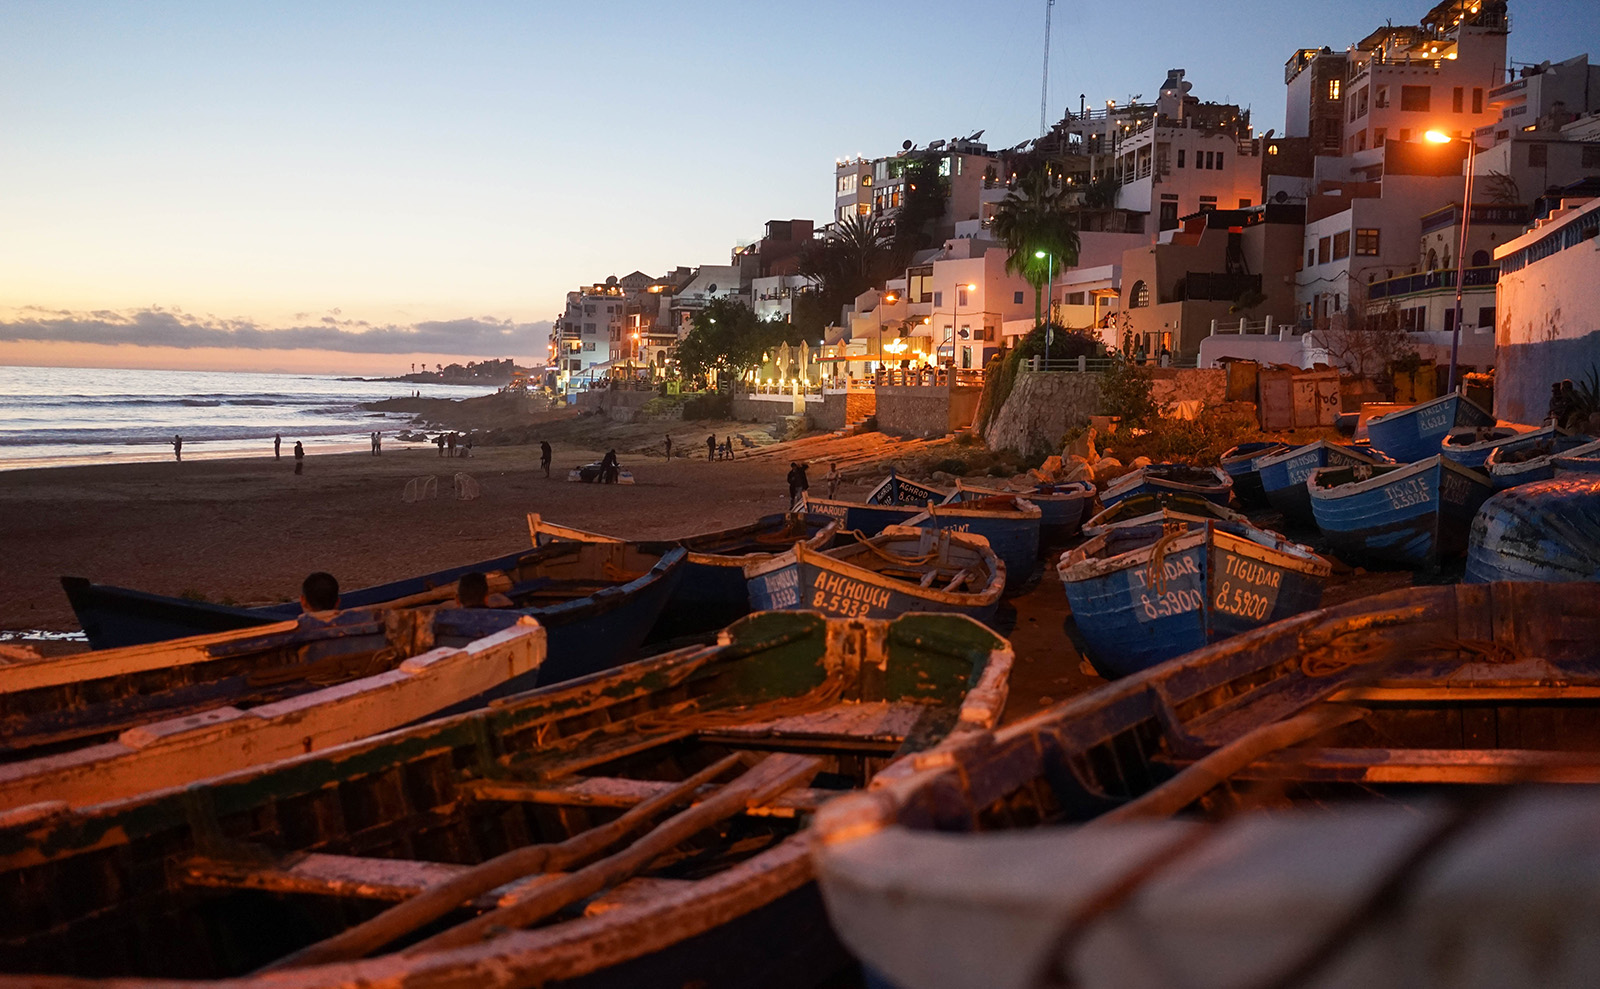 boats on a beach in morocco